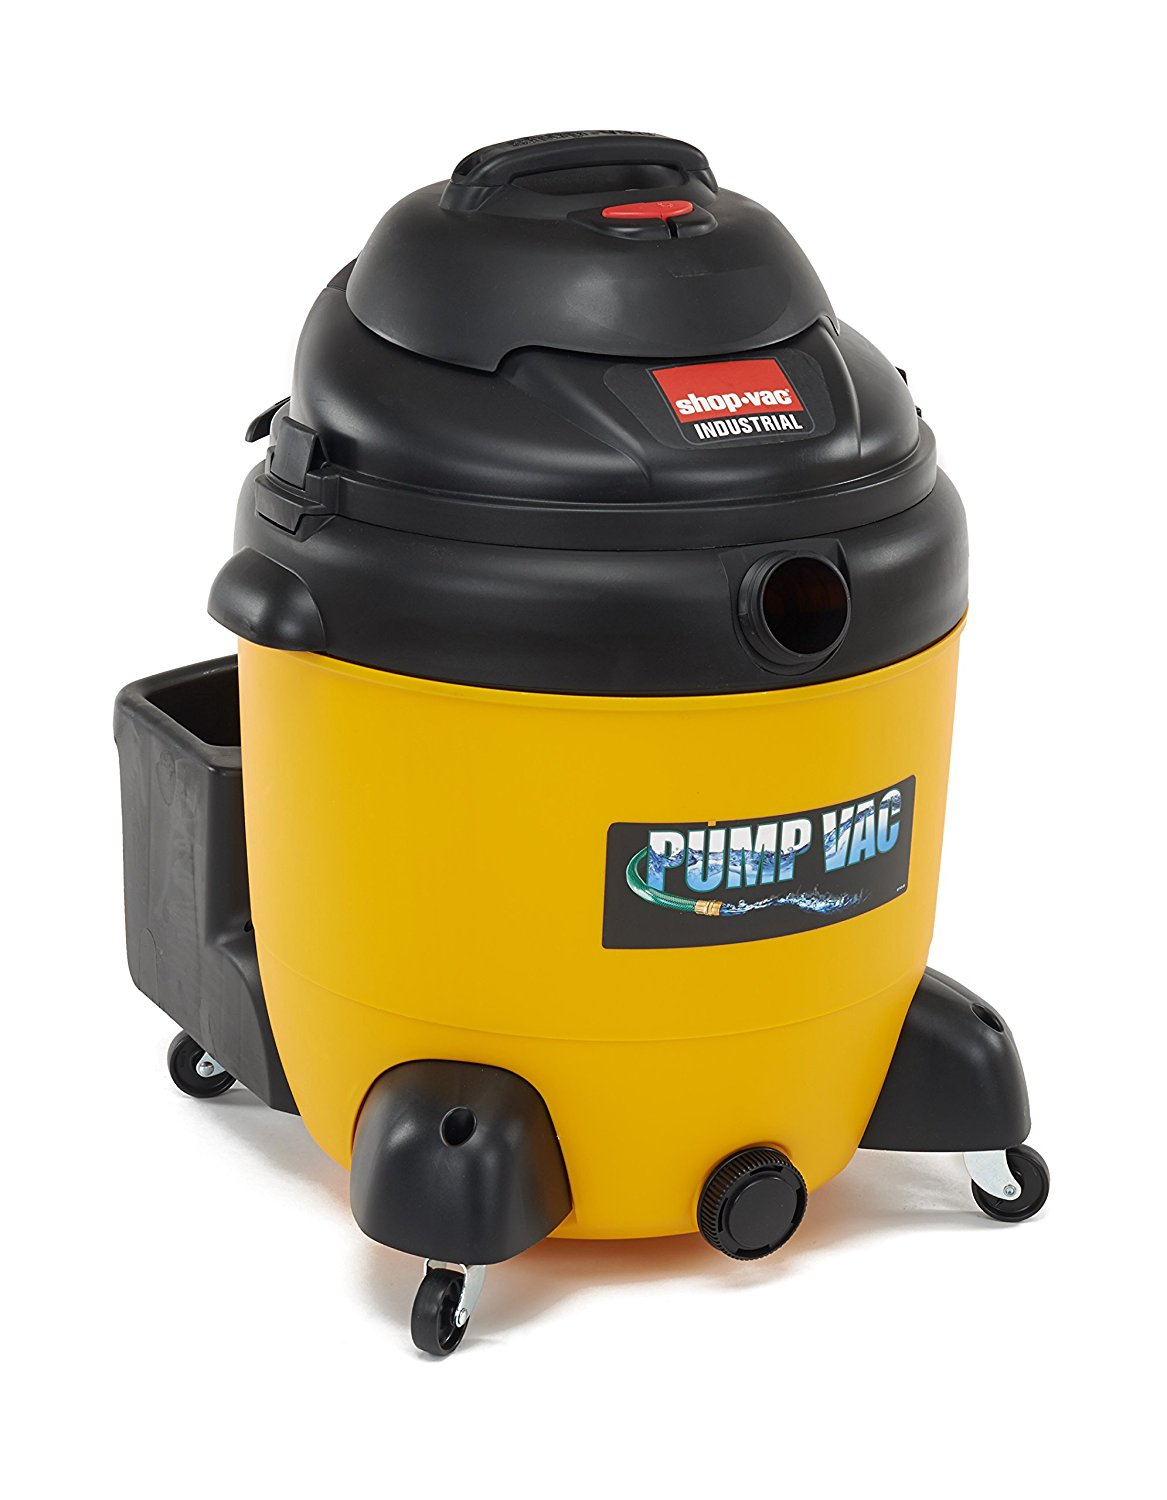 Shop-Vac 9604710 6.5 Peak HP Wet Dry Vacuum